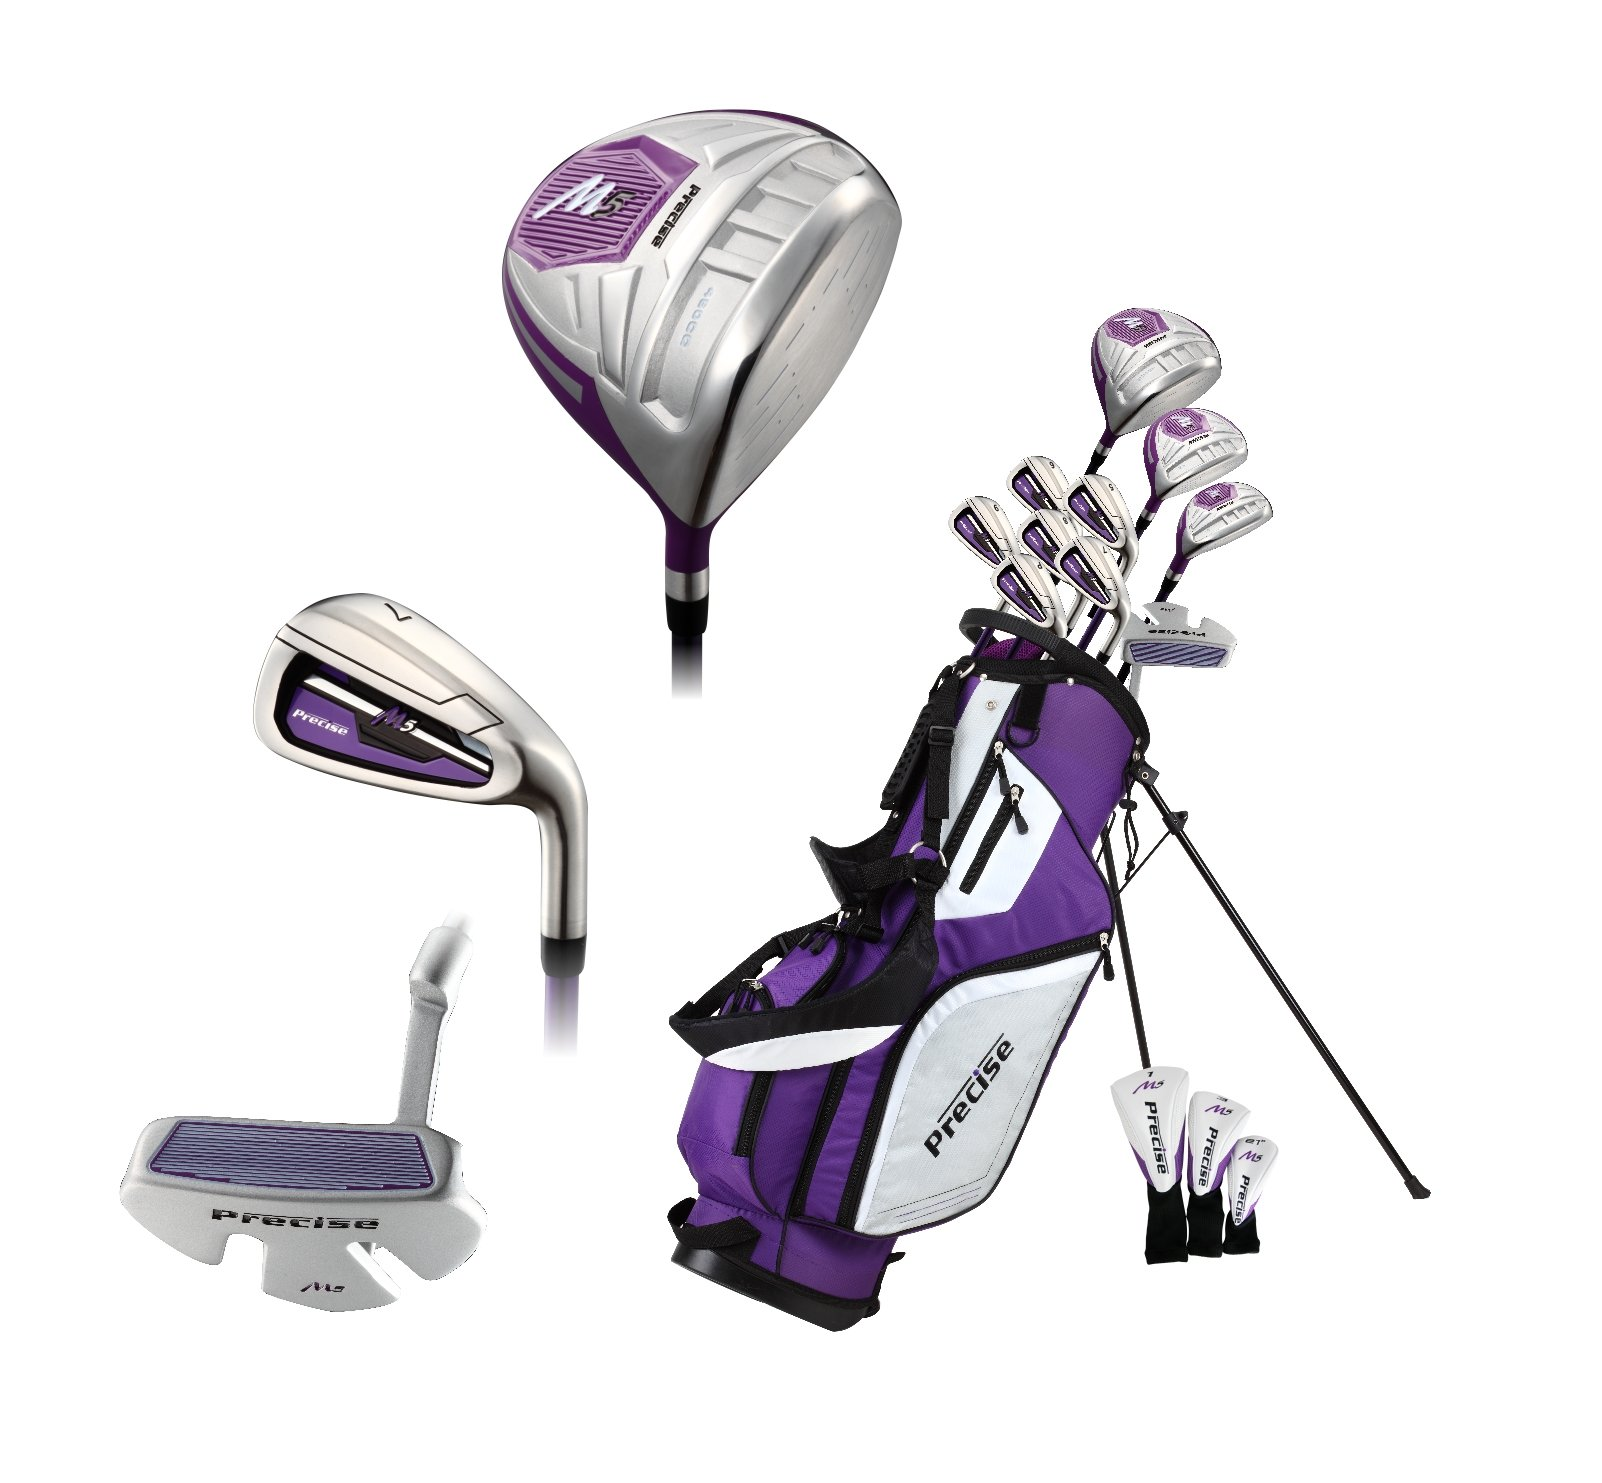 Precise M5 Ladies Womens Complete Right Handed Golf Clubs Set Includes Titanium Driver, S.S. Fairway, S.S. Hybrid, S.S. 5-PW Irons, Putter, Stand Bag, 3 H/C's Purple (Right Hand) by PreciseGolf Co. (Image #9)